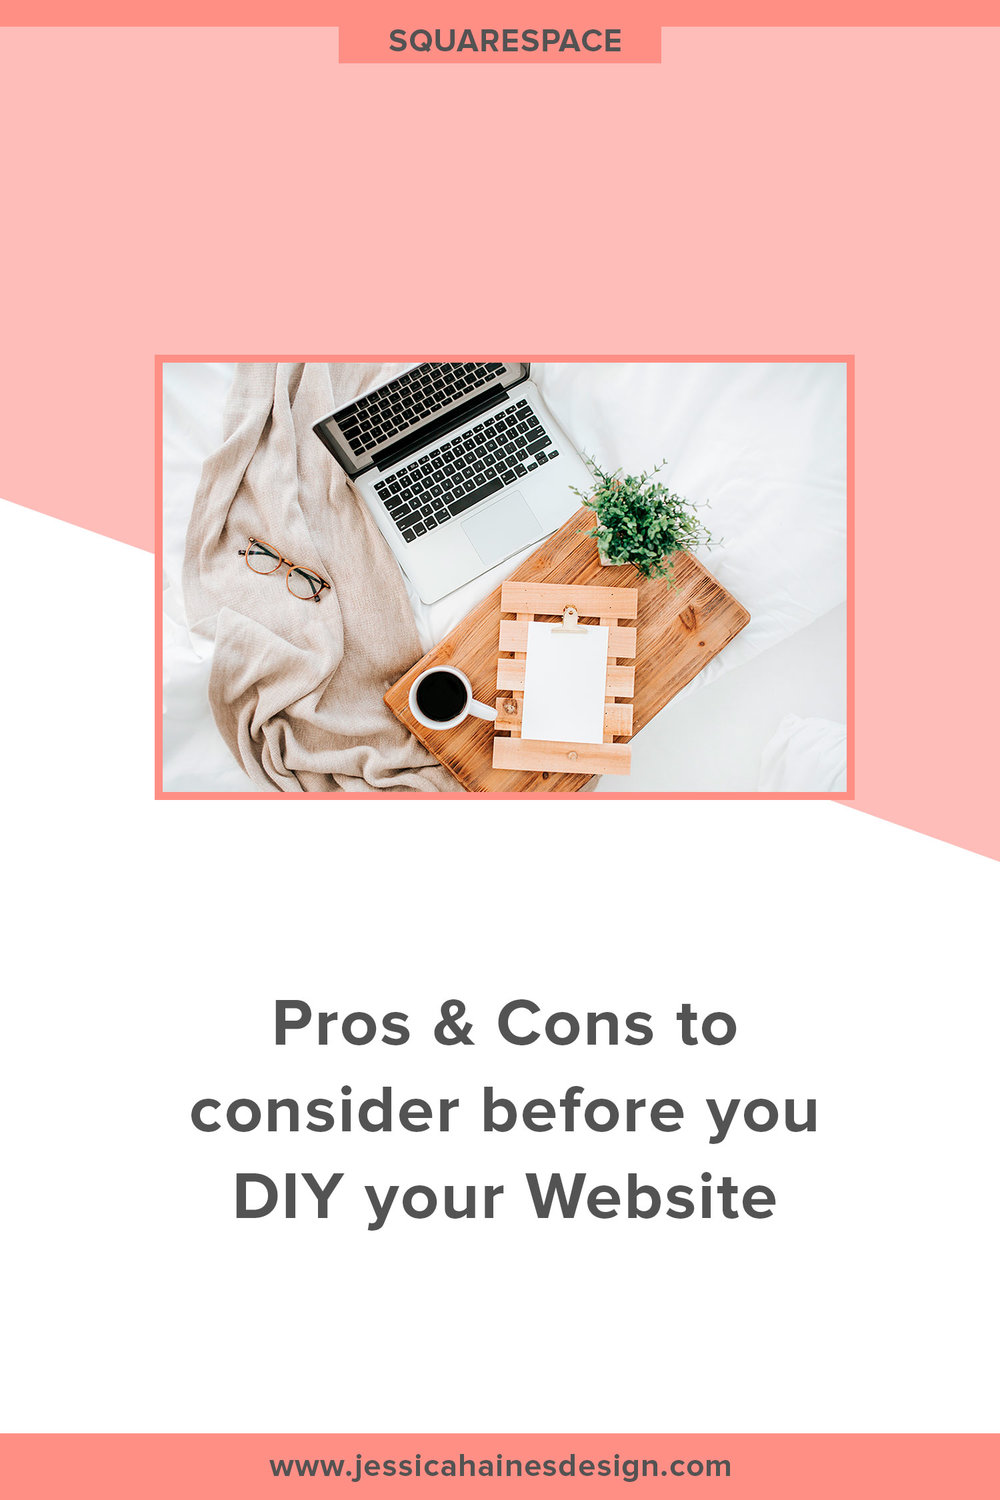 Pros and Cons of a DIY Website – Not sure if you should DIY your business website or hire a professional? Click through to find out which option is the right fit for your business needs | www.jessicahainesdesign.com